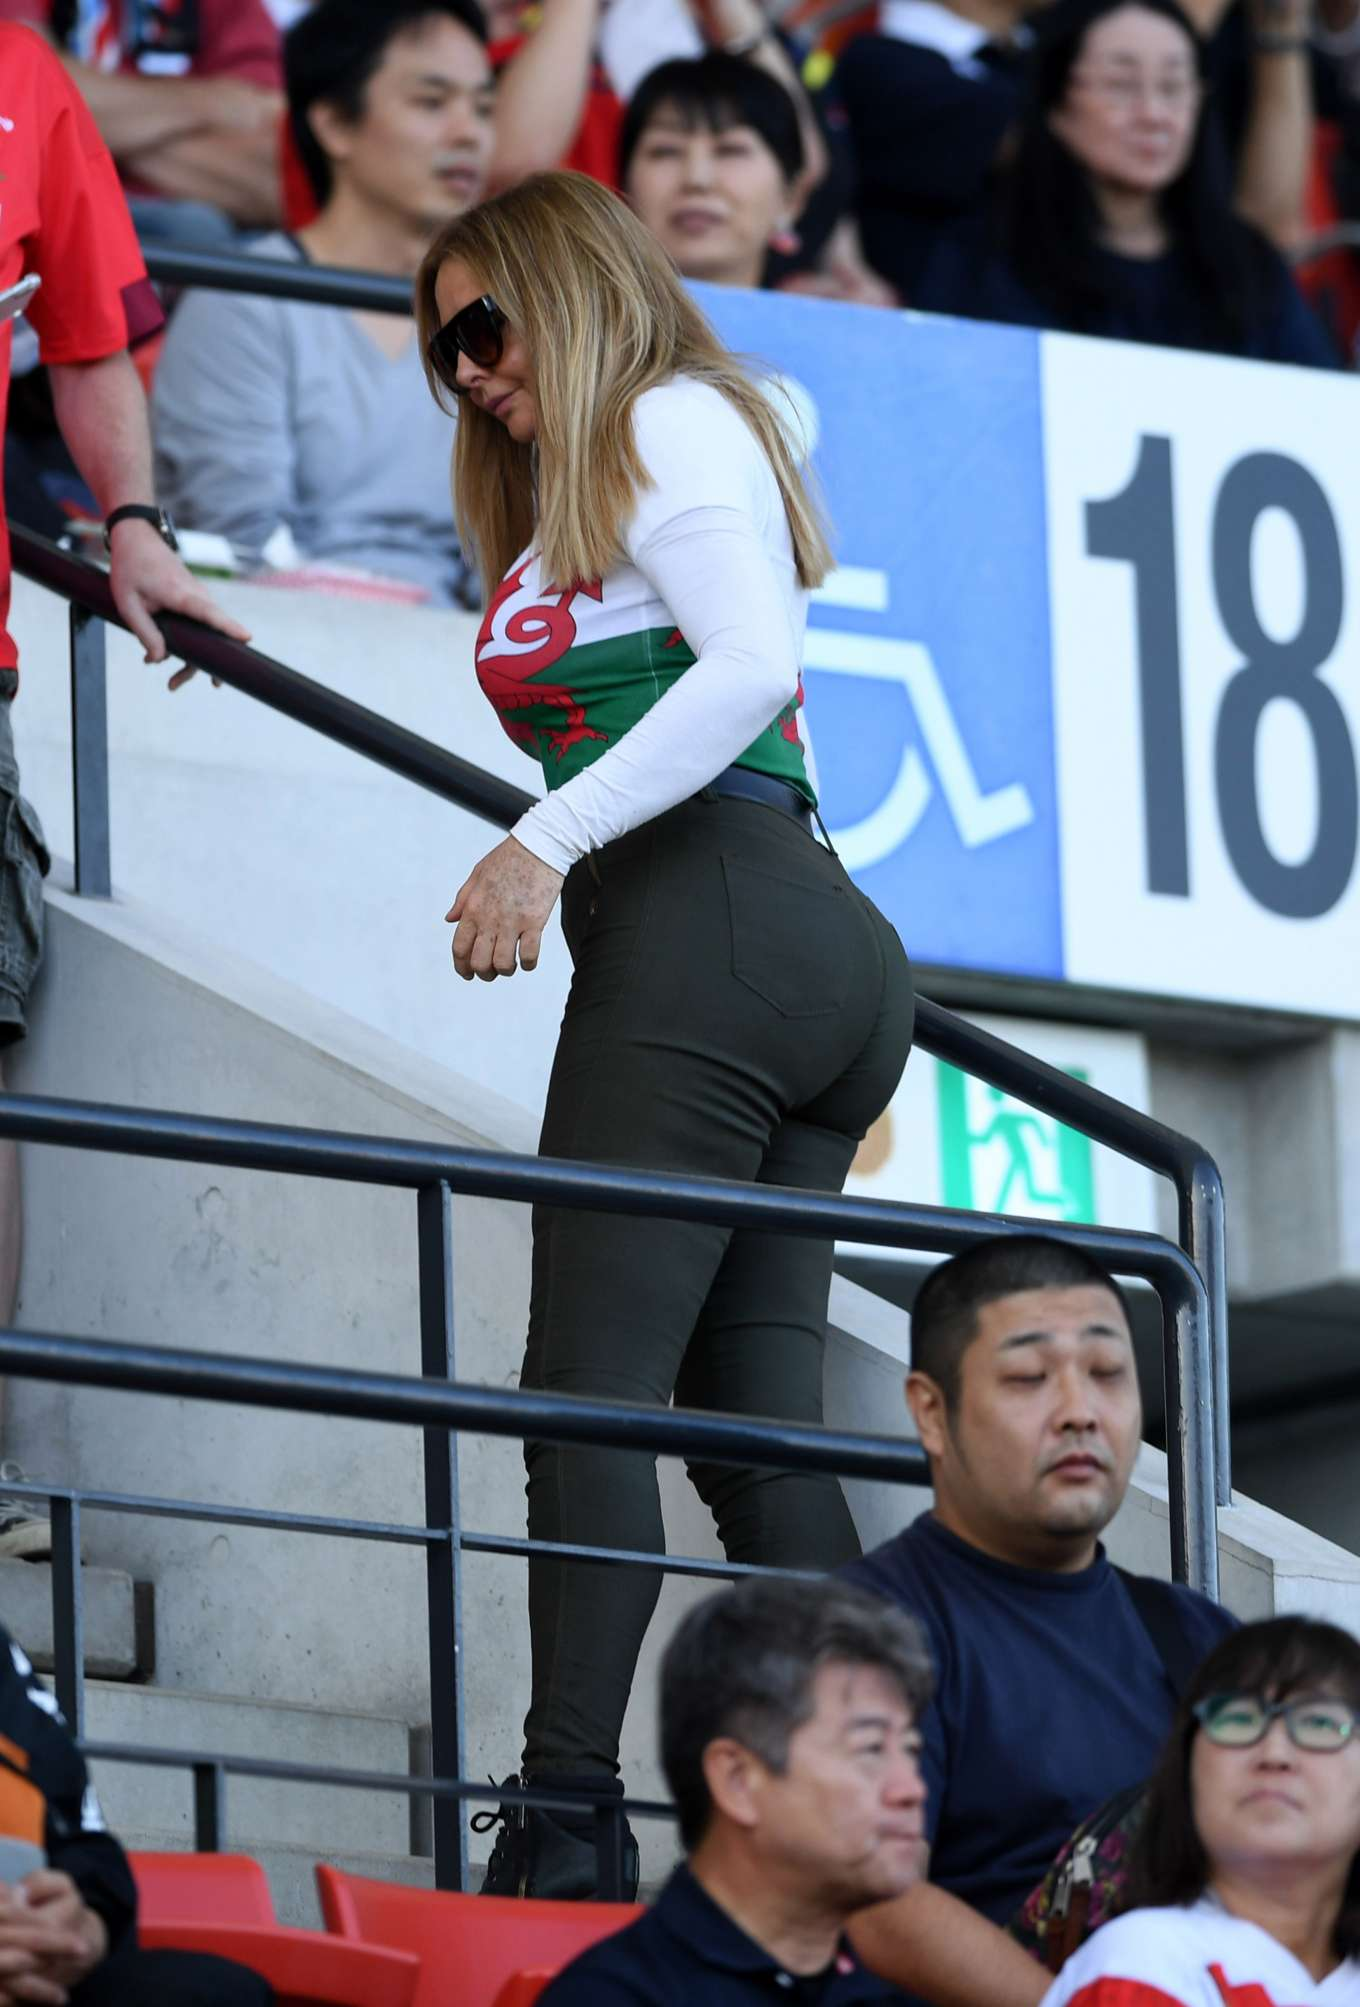 Carol Vorderman - Supporting Wales at the Rugby World Cup in Japan